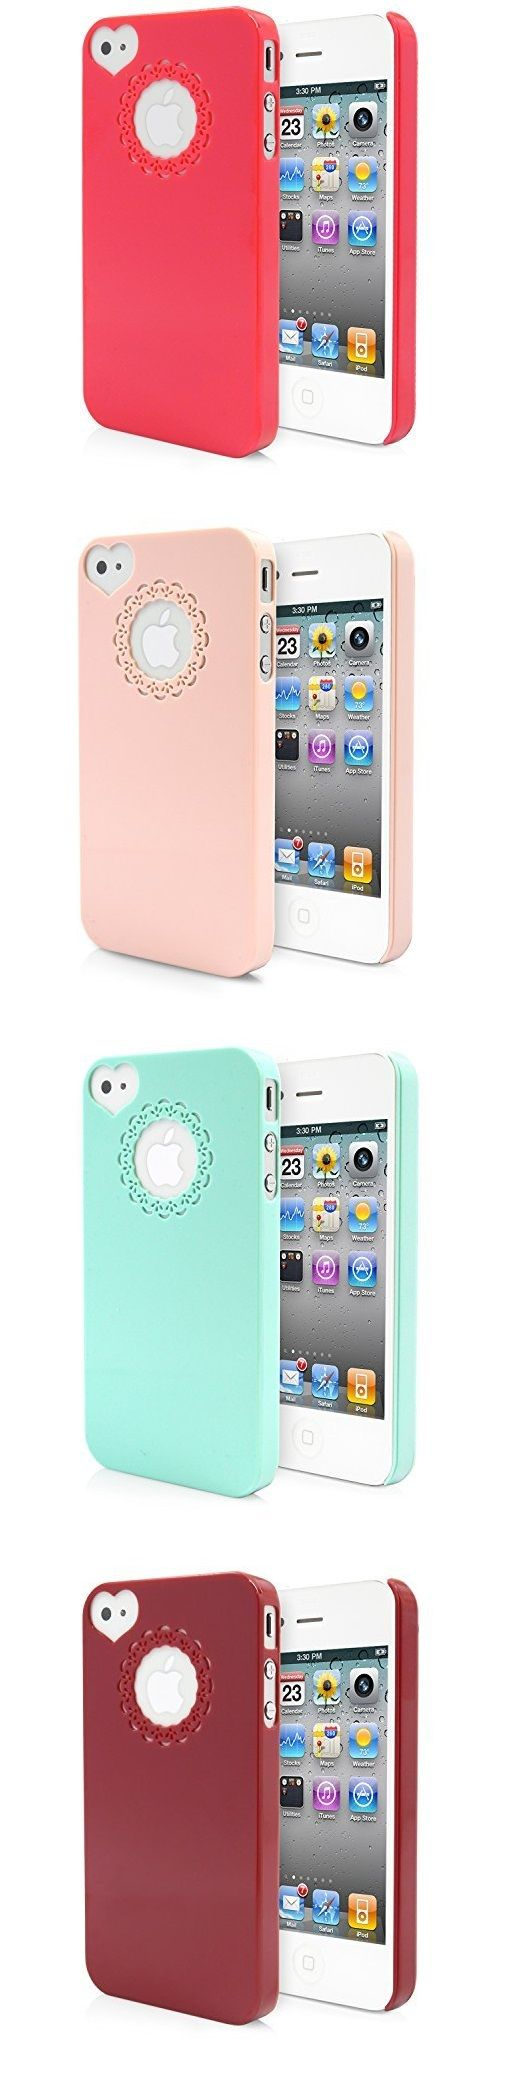 Awesome deals! Time to get your summer accessories ready... sunglasses, bikini and new unique colorful case for iPhone 4 4S! Ultra Slim Thin Premium Lovely Cute  On Heart Love Camera Hole Cover for Girls Lace Logo Design Pattern Perfect for Girls Women Available colors: Mint, Peach/Cream, Rose Pink, Dark Red| MagicMobile